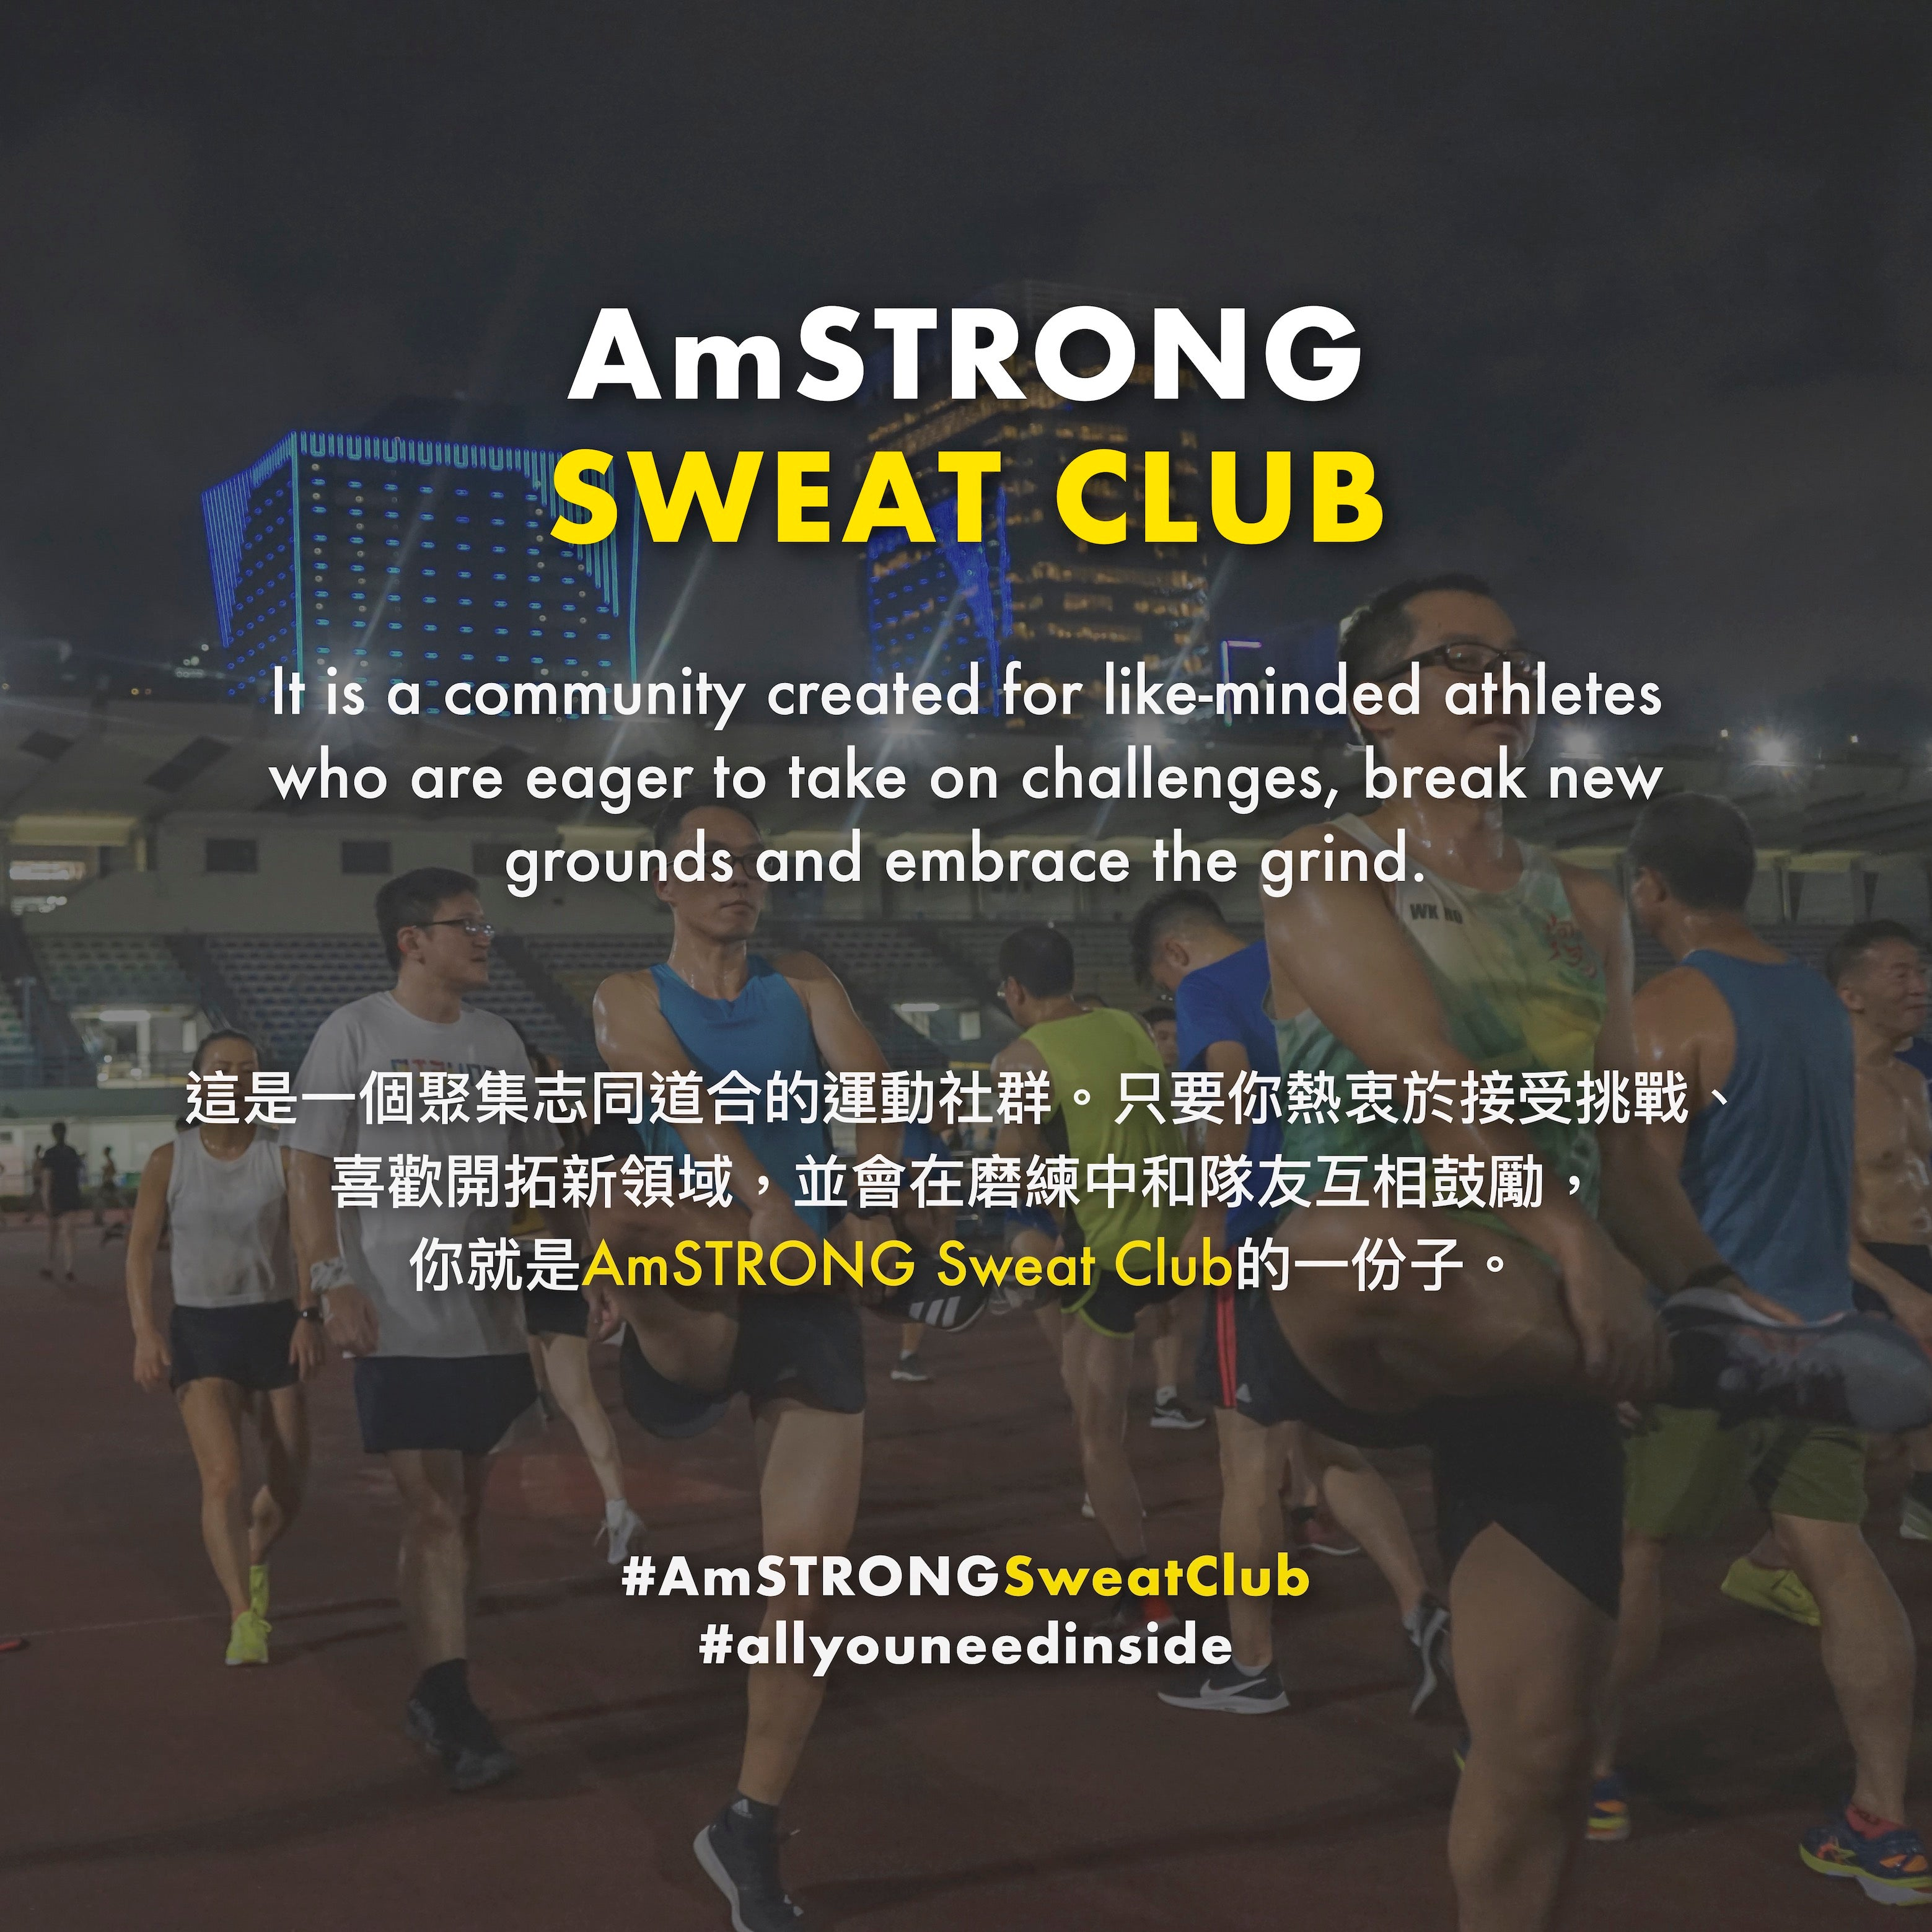 AmSTRONG Sweat Club